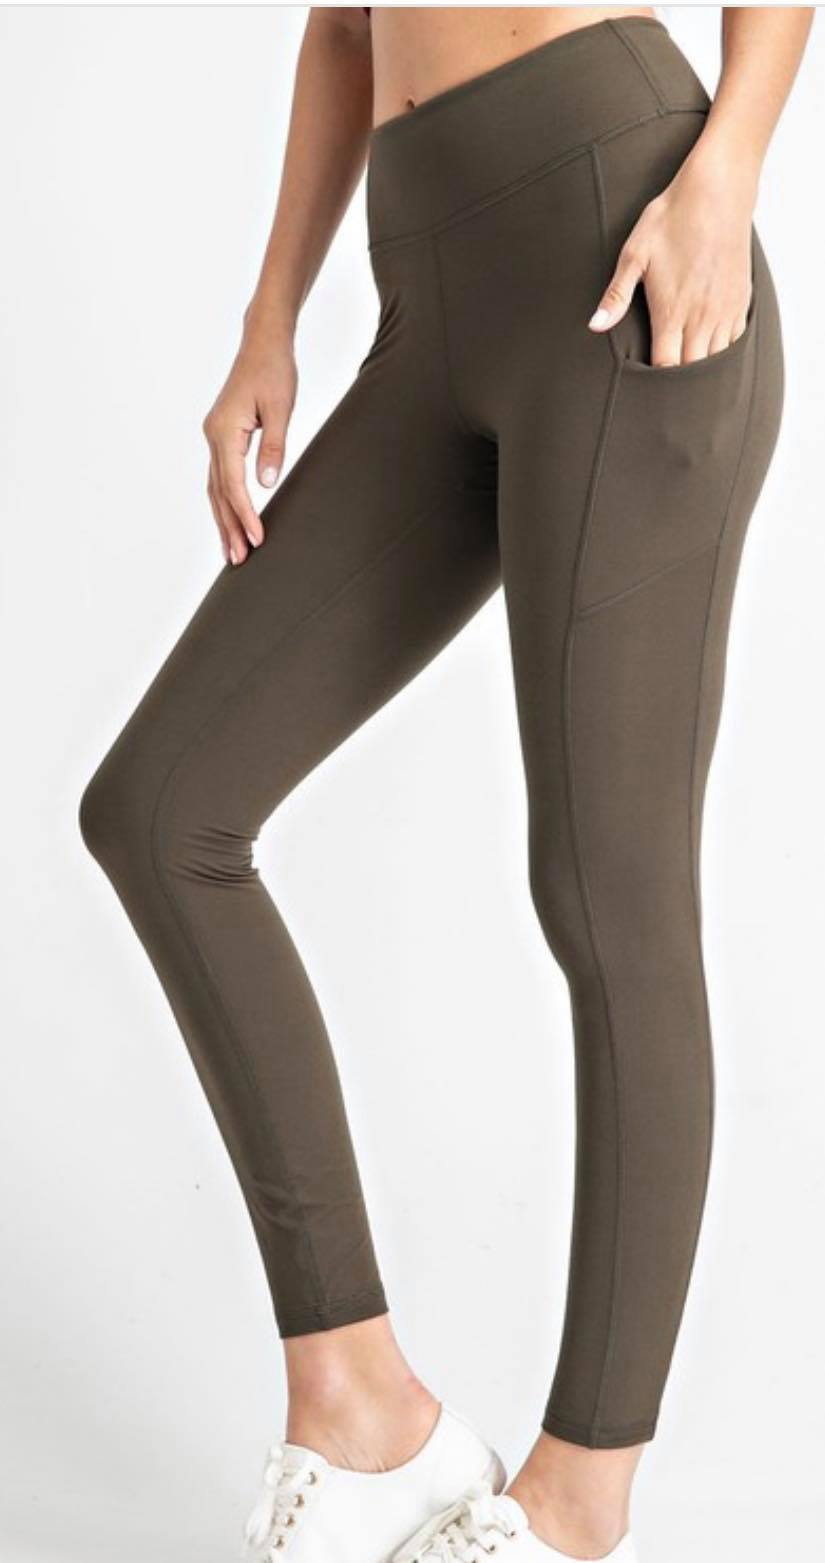 Olive Buttery Soft Leggings with Pockets